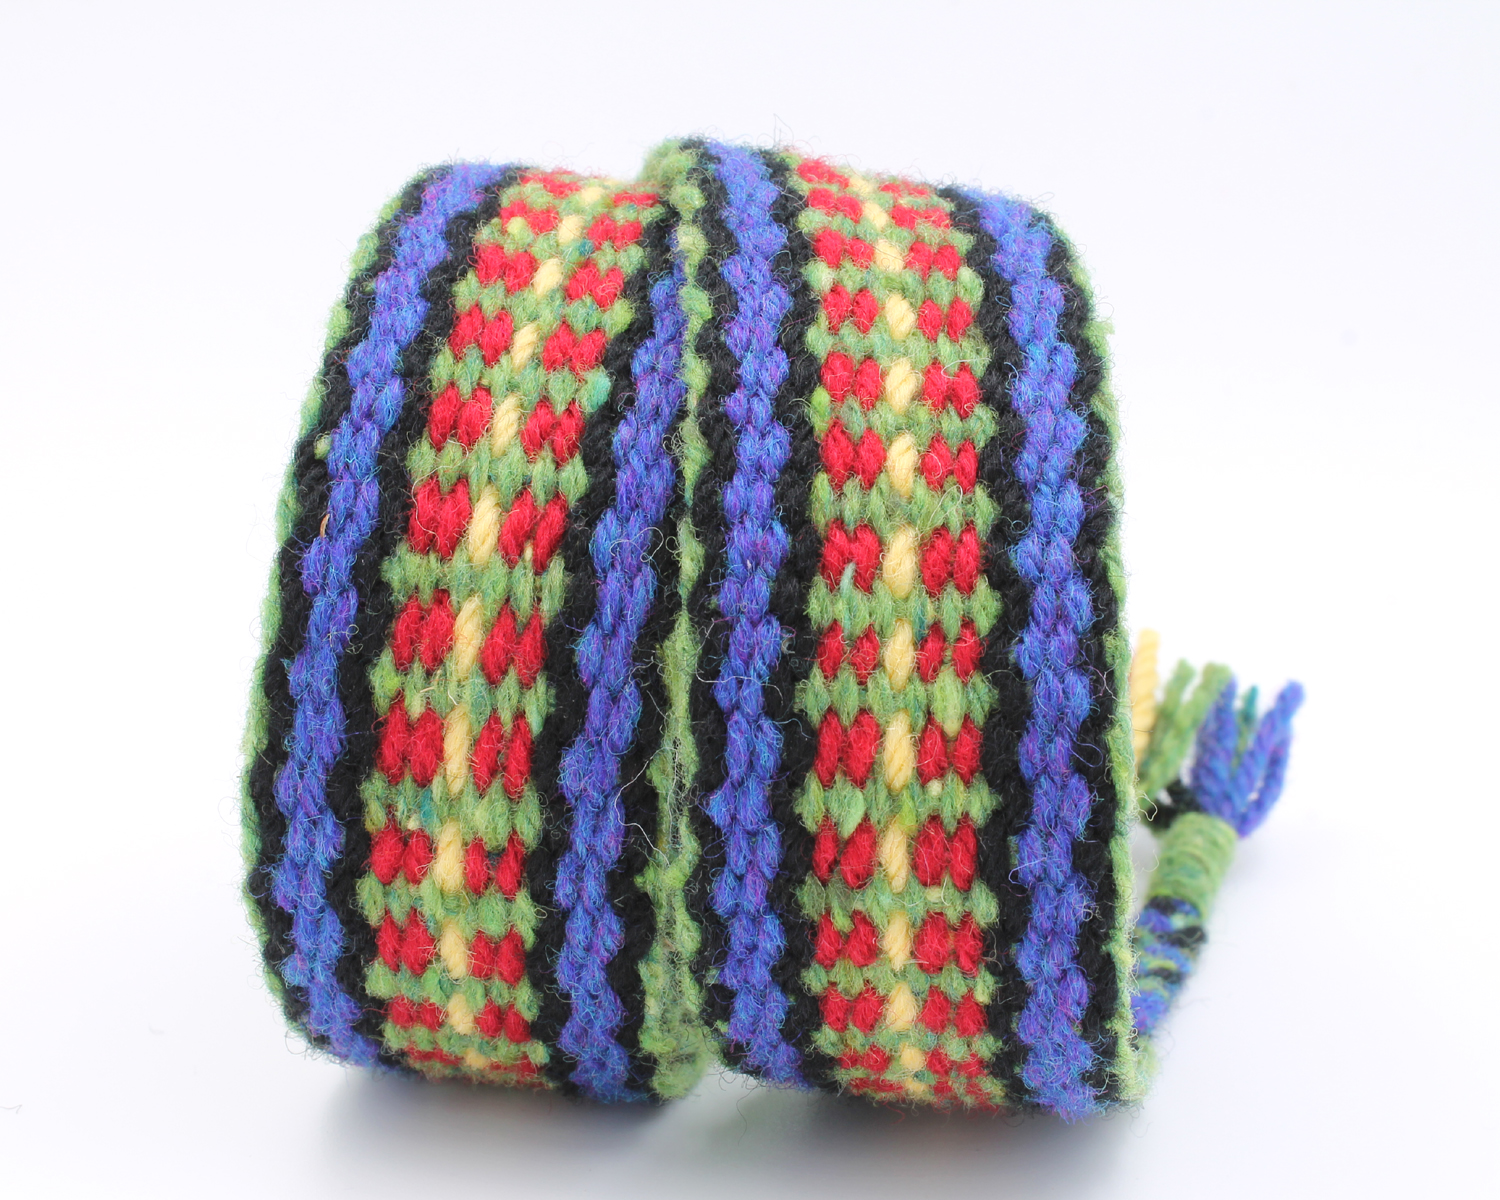 Handfasting Cord - Aran Islands 3